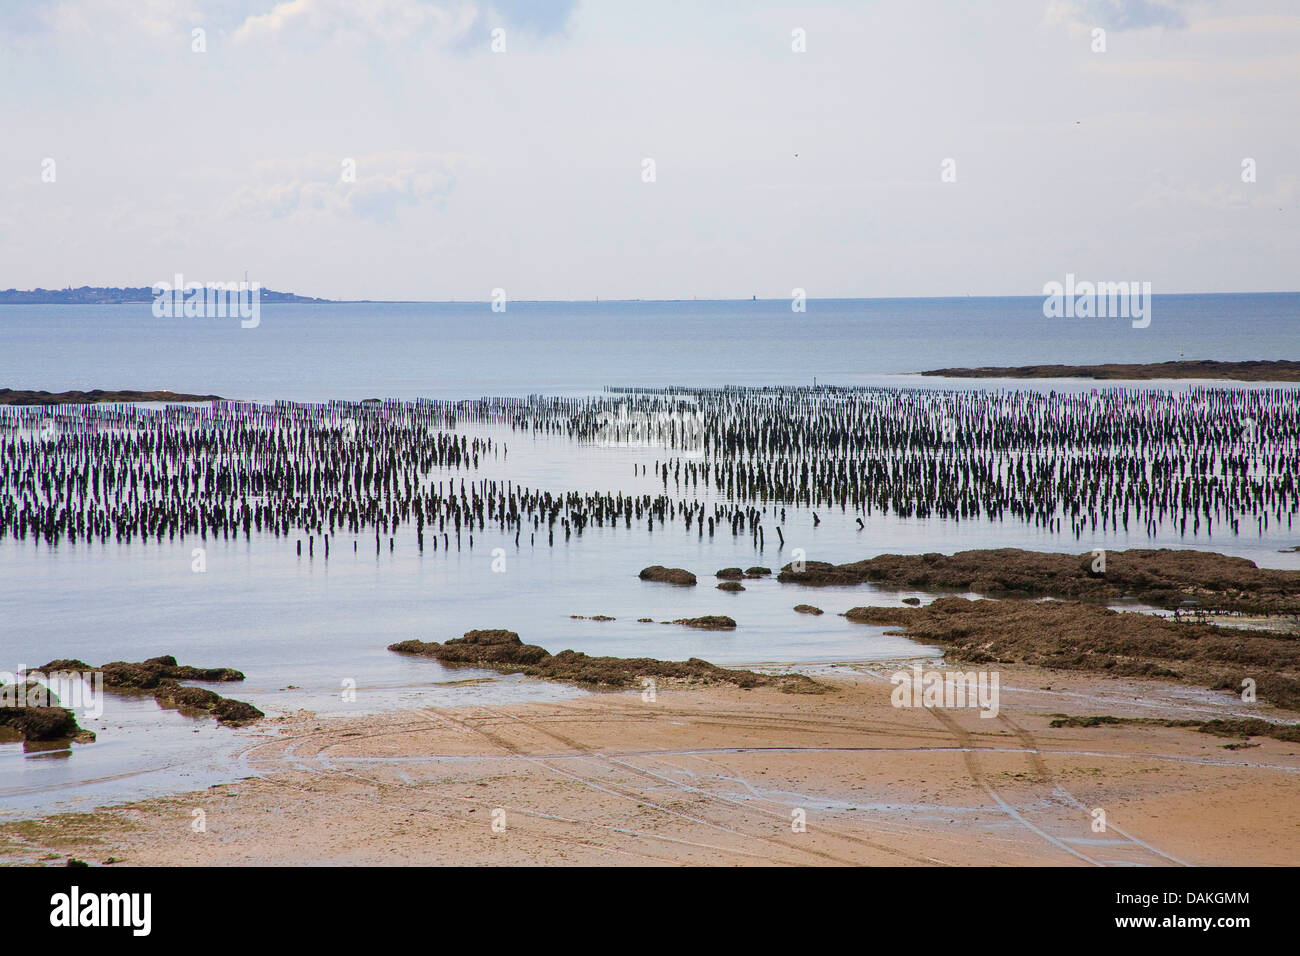 mussel cultivation at the coast, France, Brittany - Stock Image